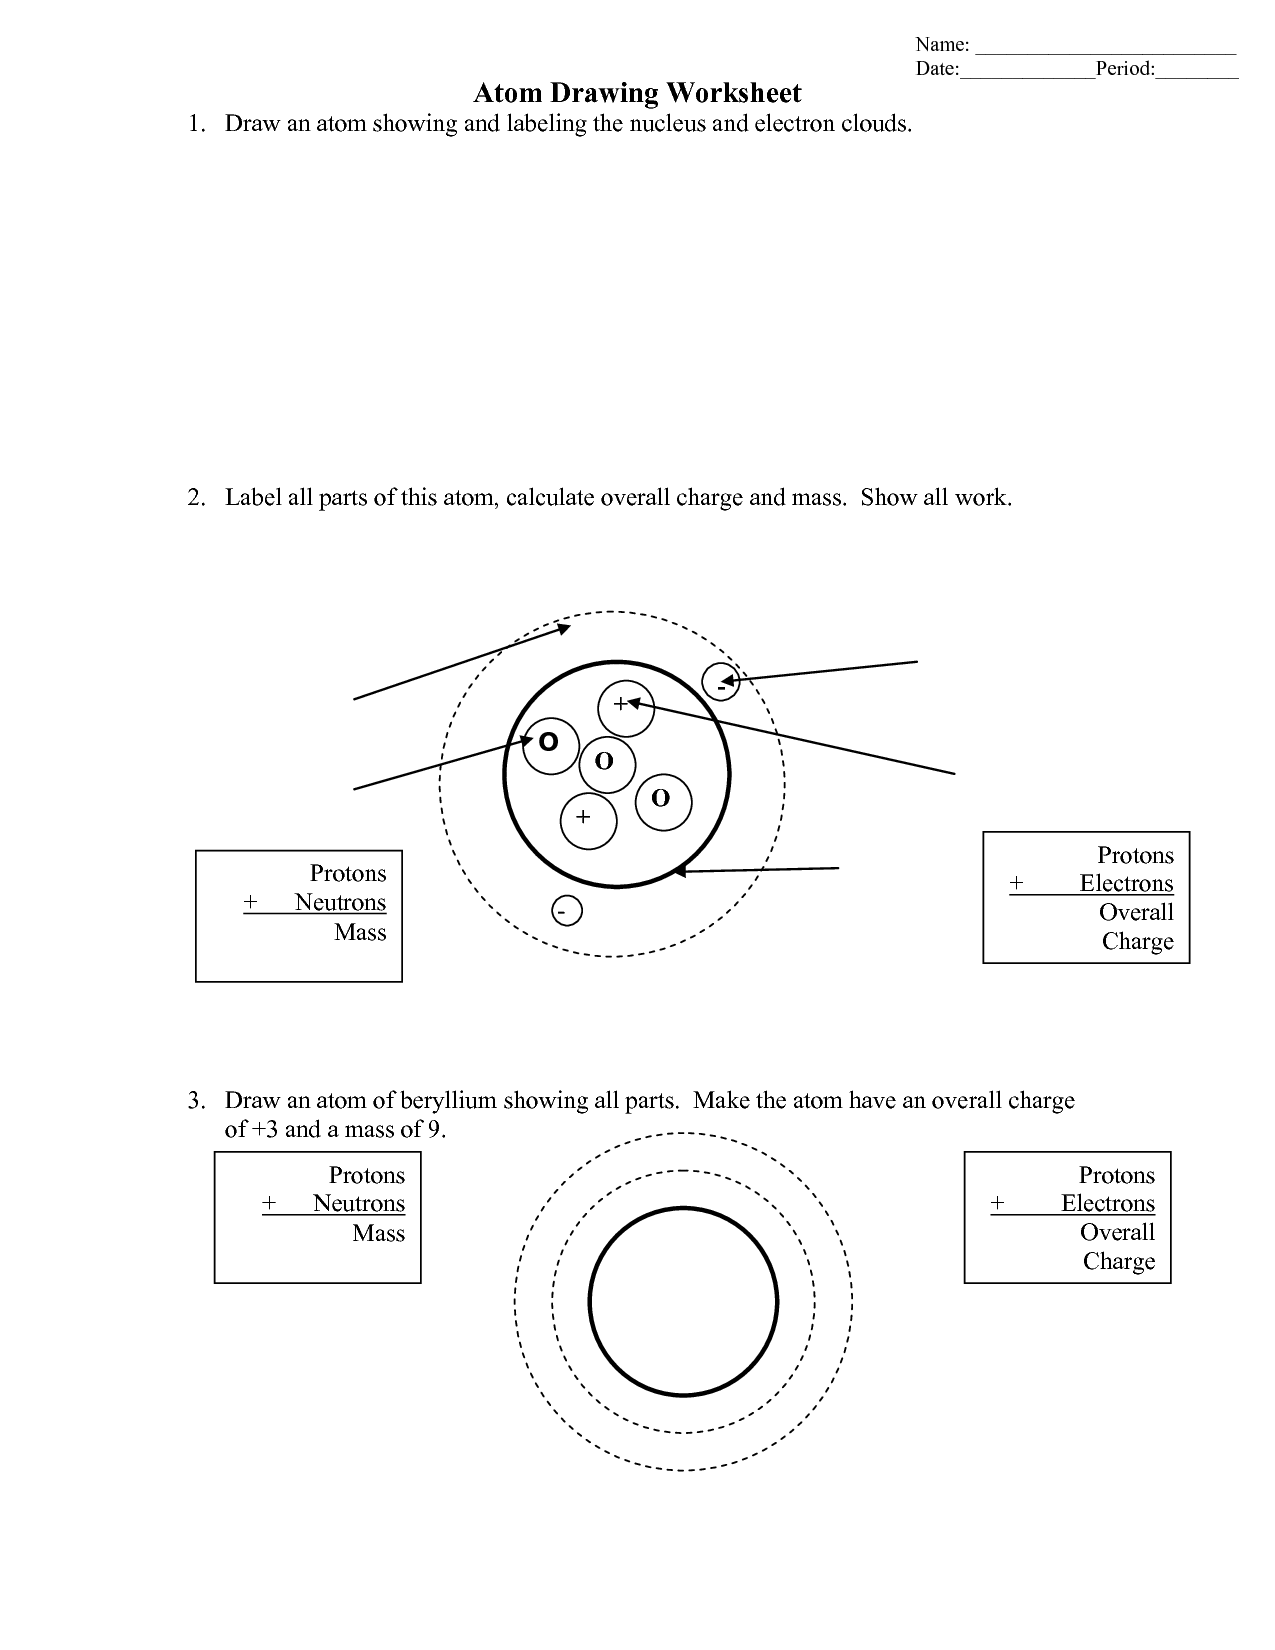 Bohr Model Drawing Worksheet Key